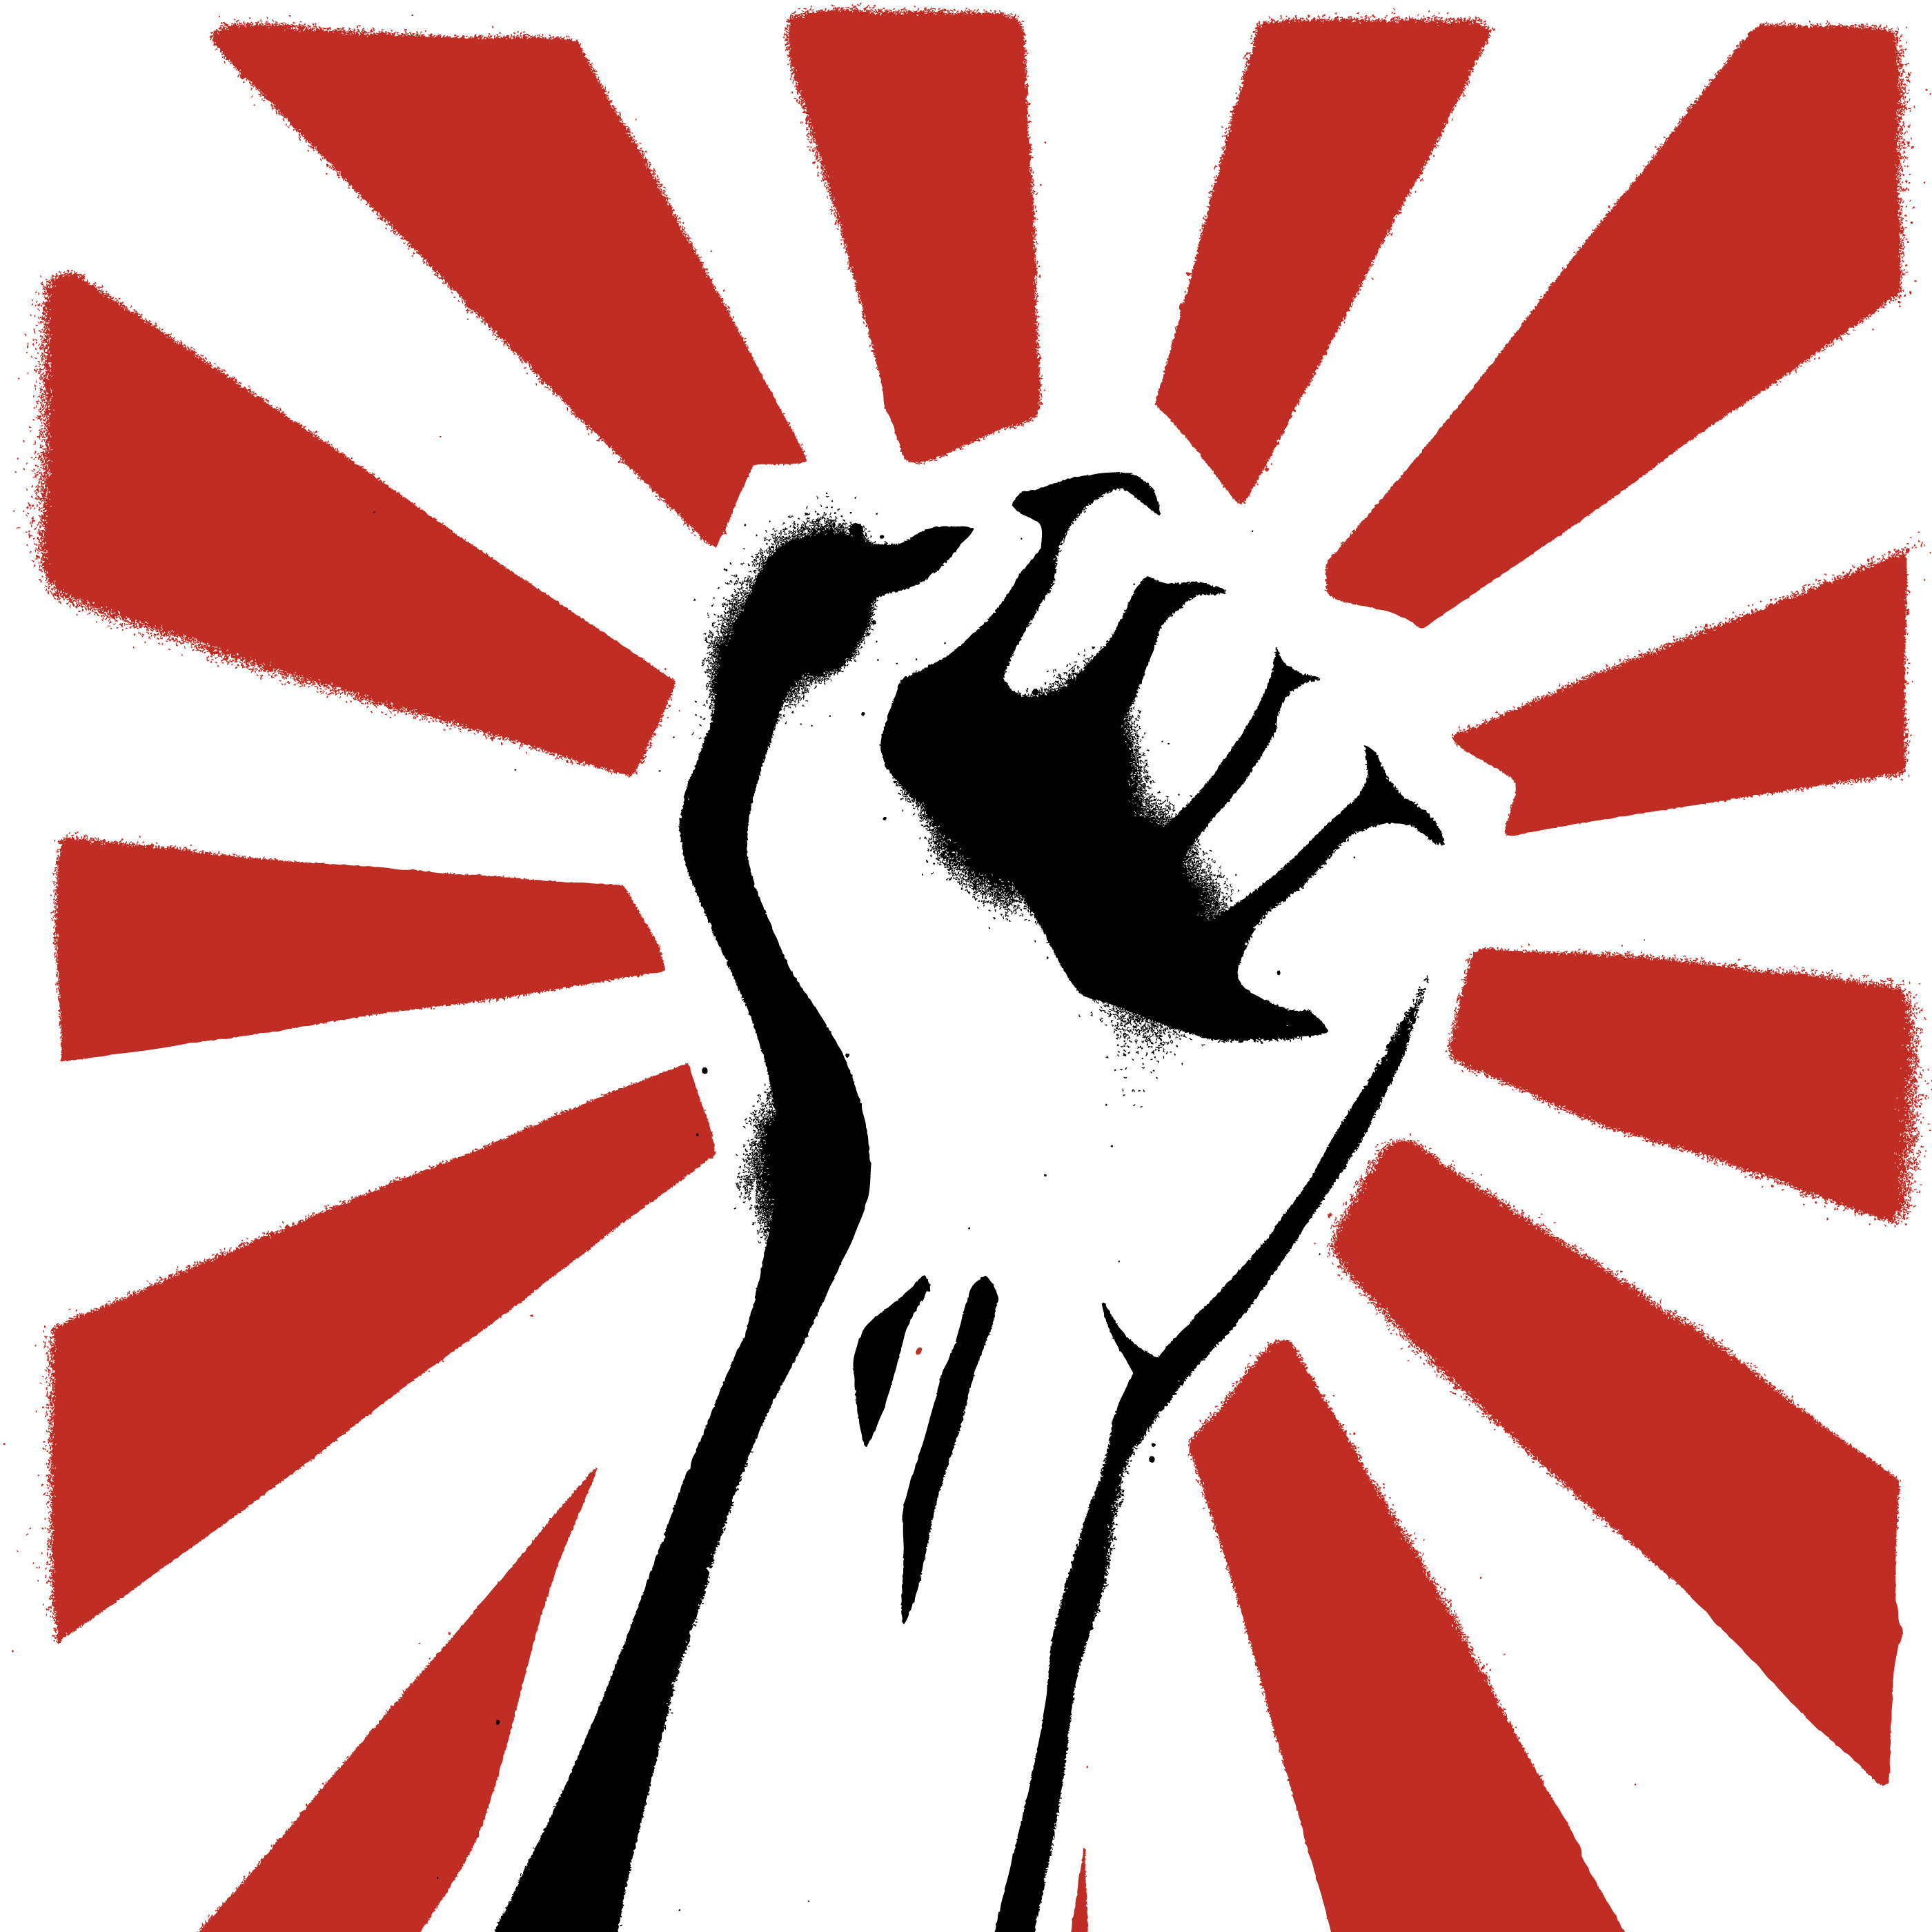 Revolution clipart people power Clipart fist clipart (47+) Power